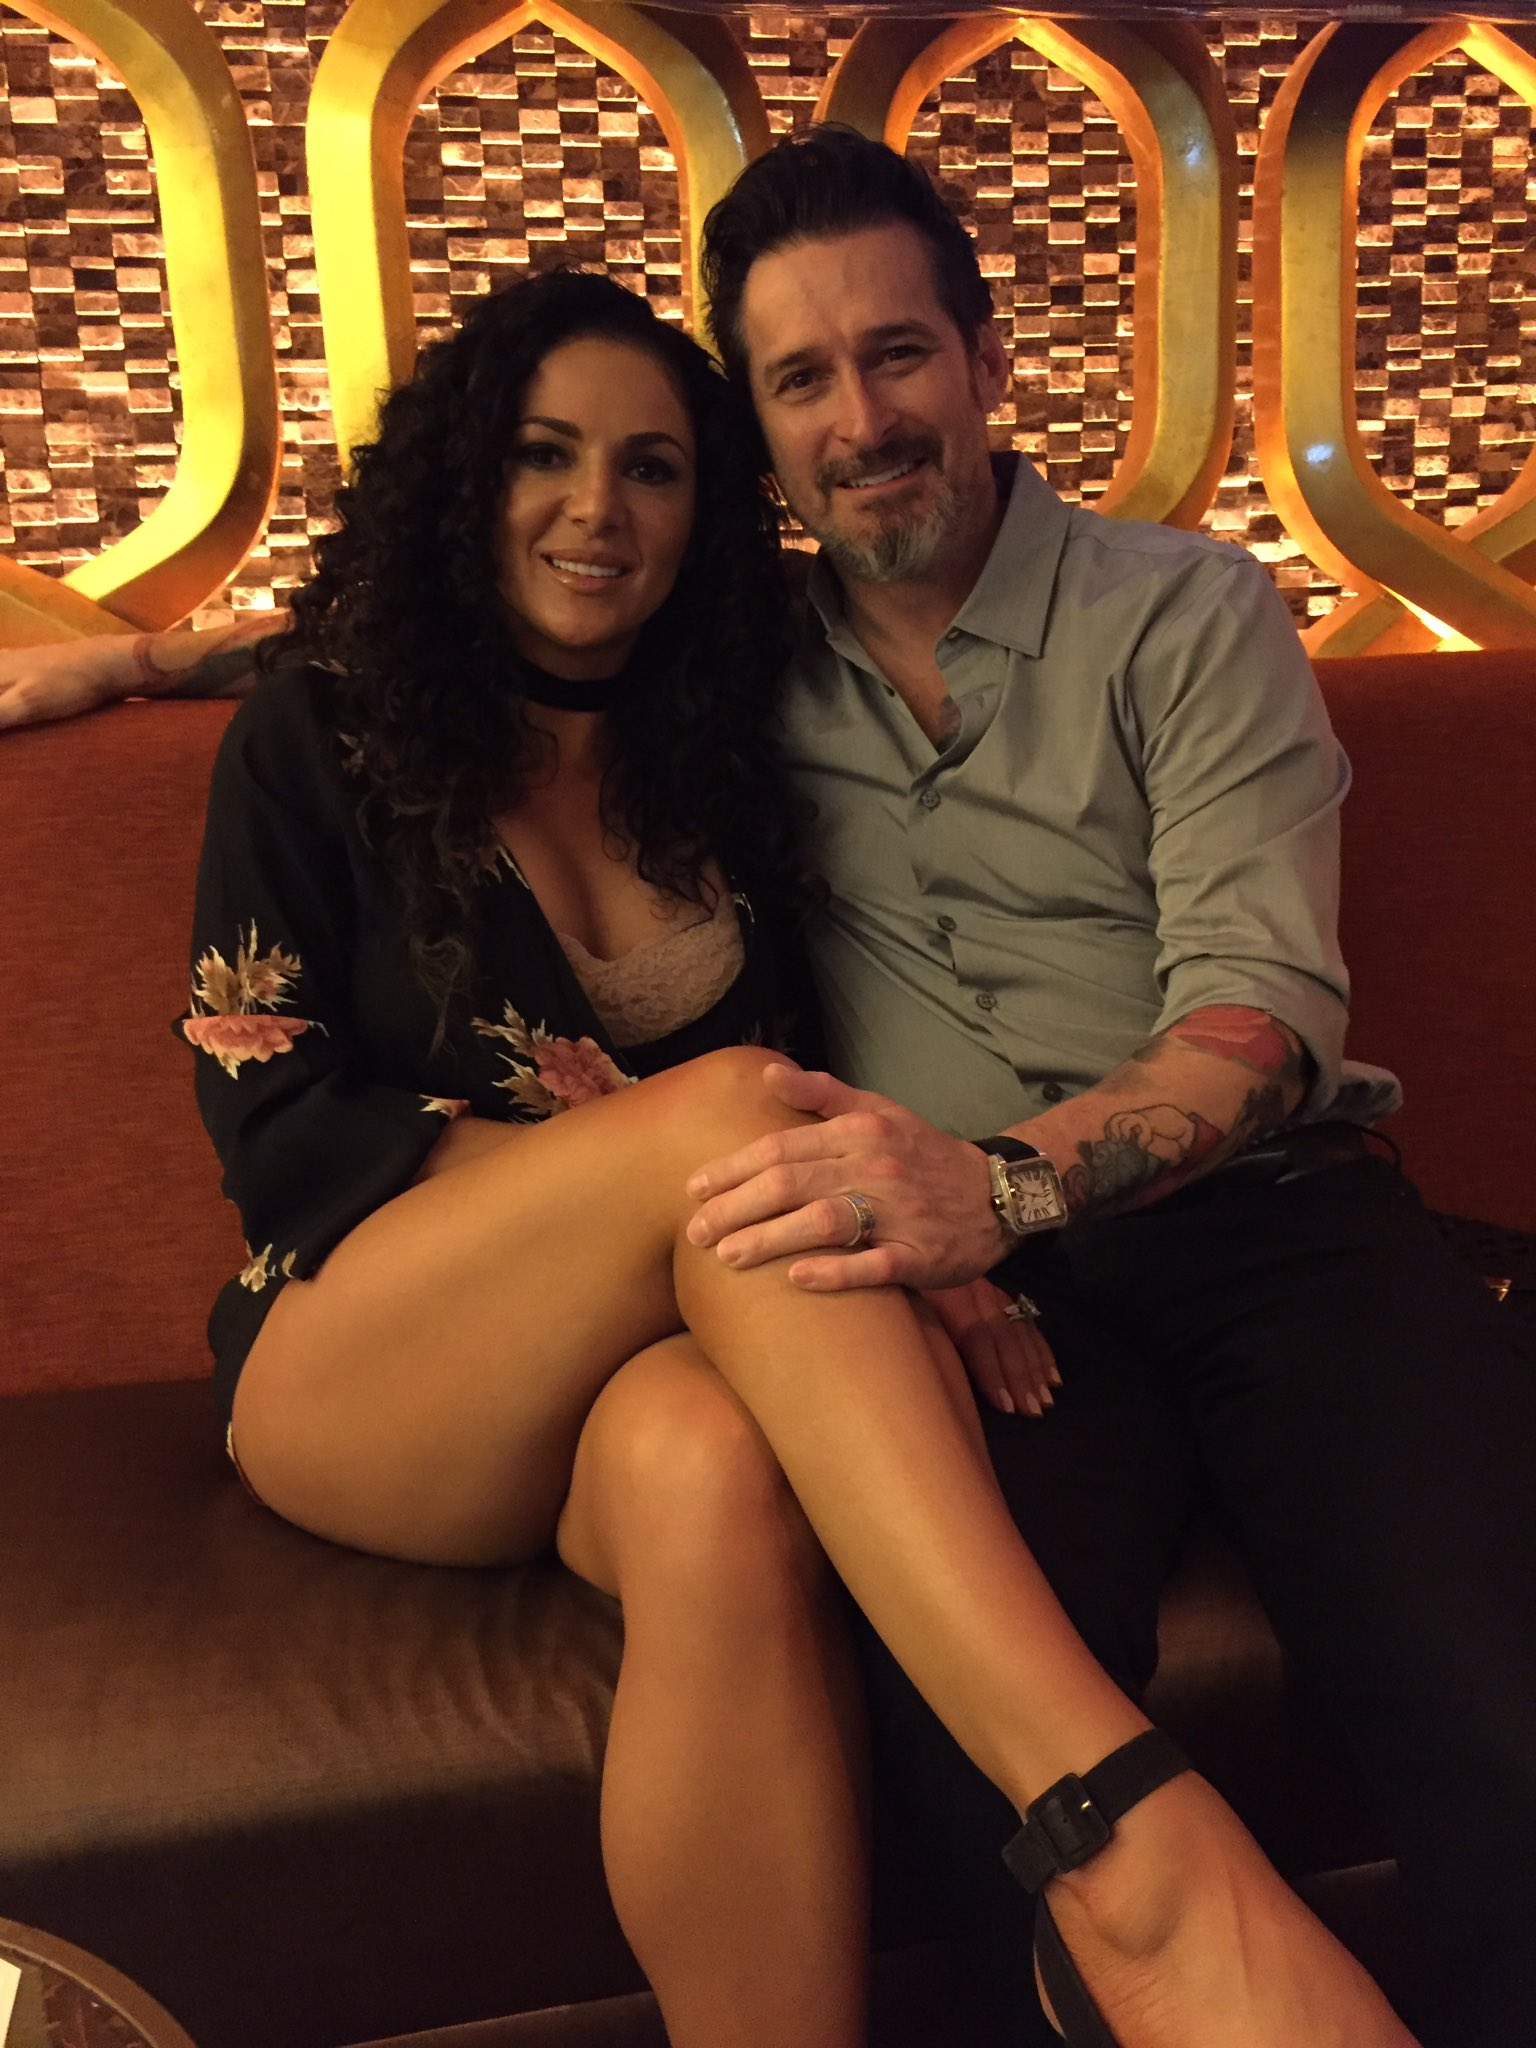 Joey Hamilton on Twitter: And with my sexy wife @lianago